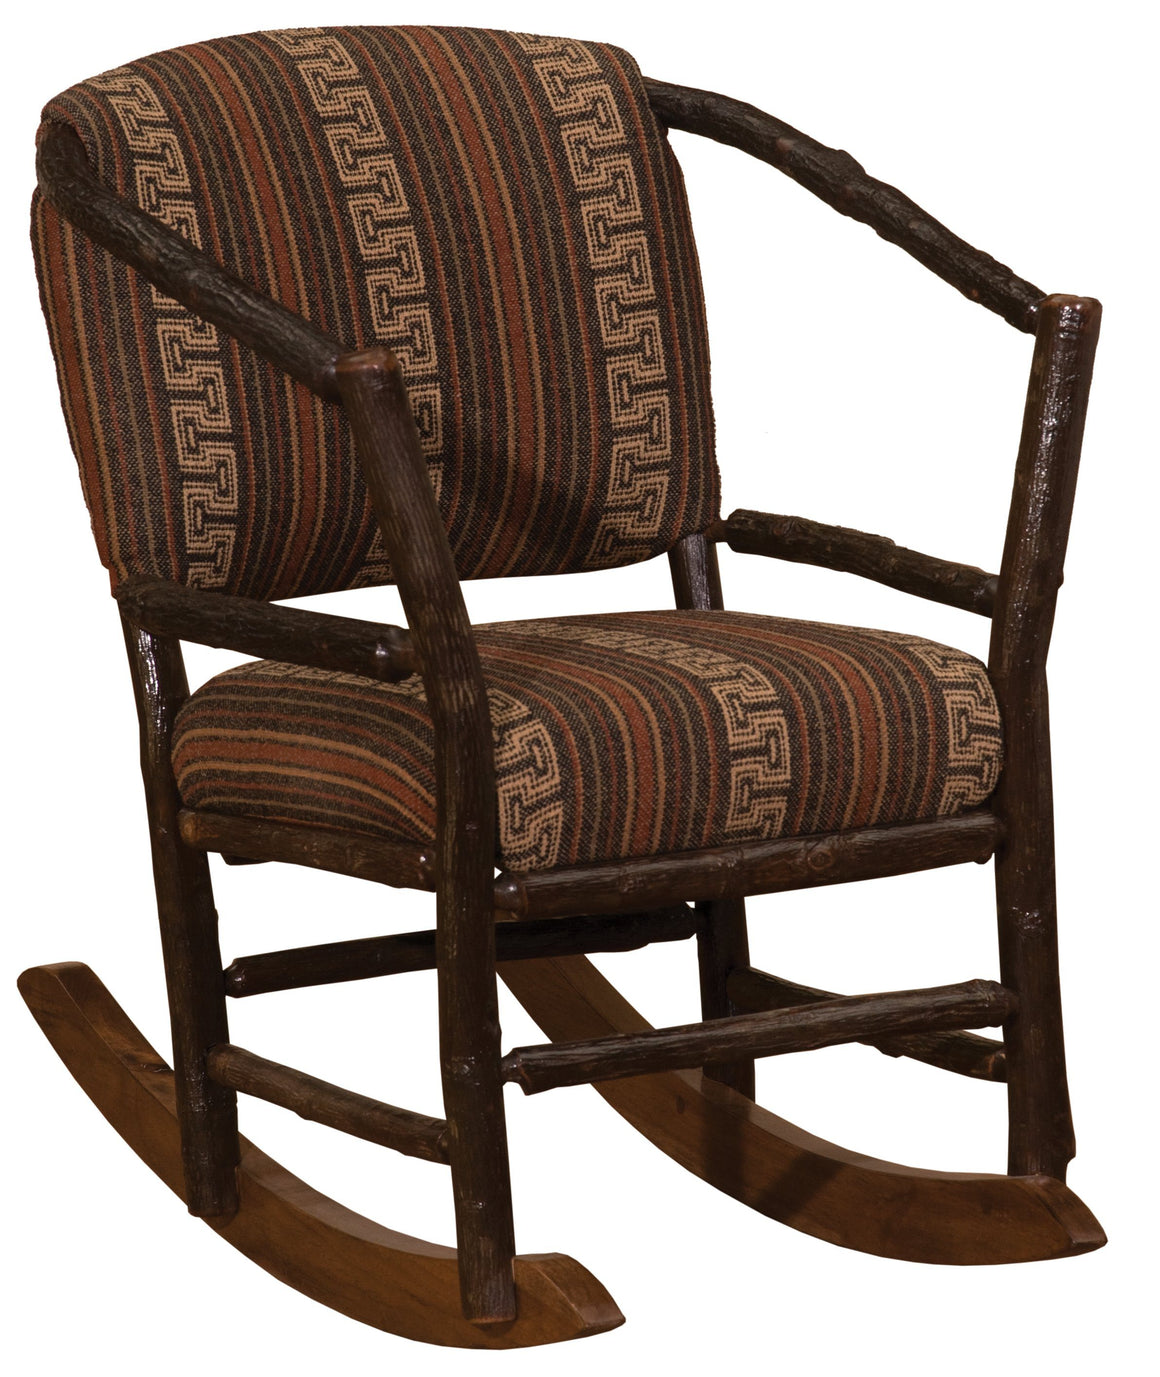 Natural Hickory Log Hoop Rocking Chair with Upholstered Seat & Back Chair Fireside Lodge Customer's Own Material